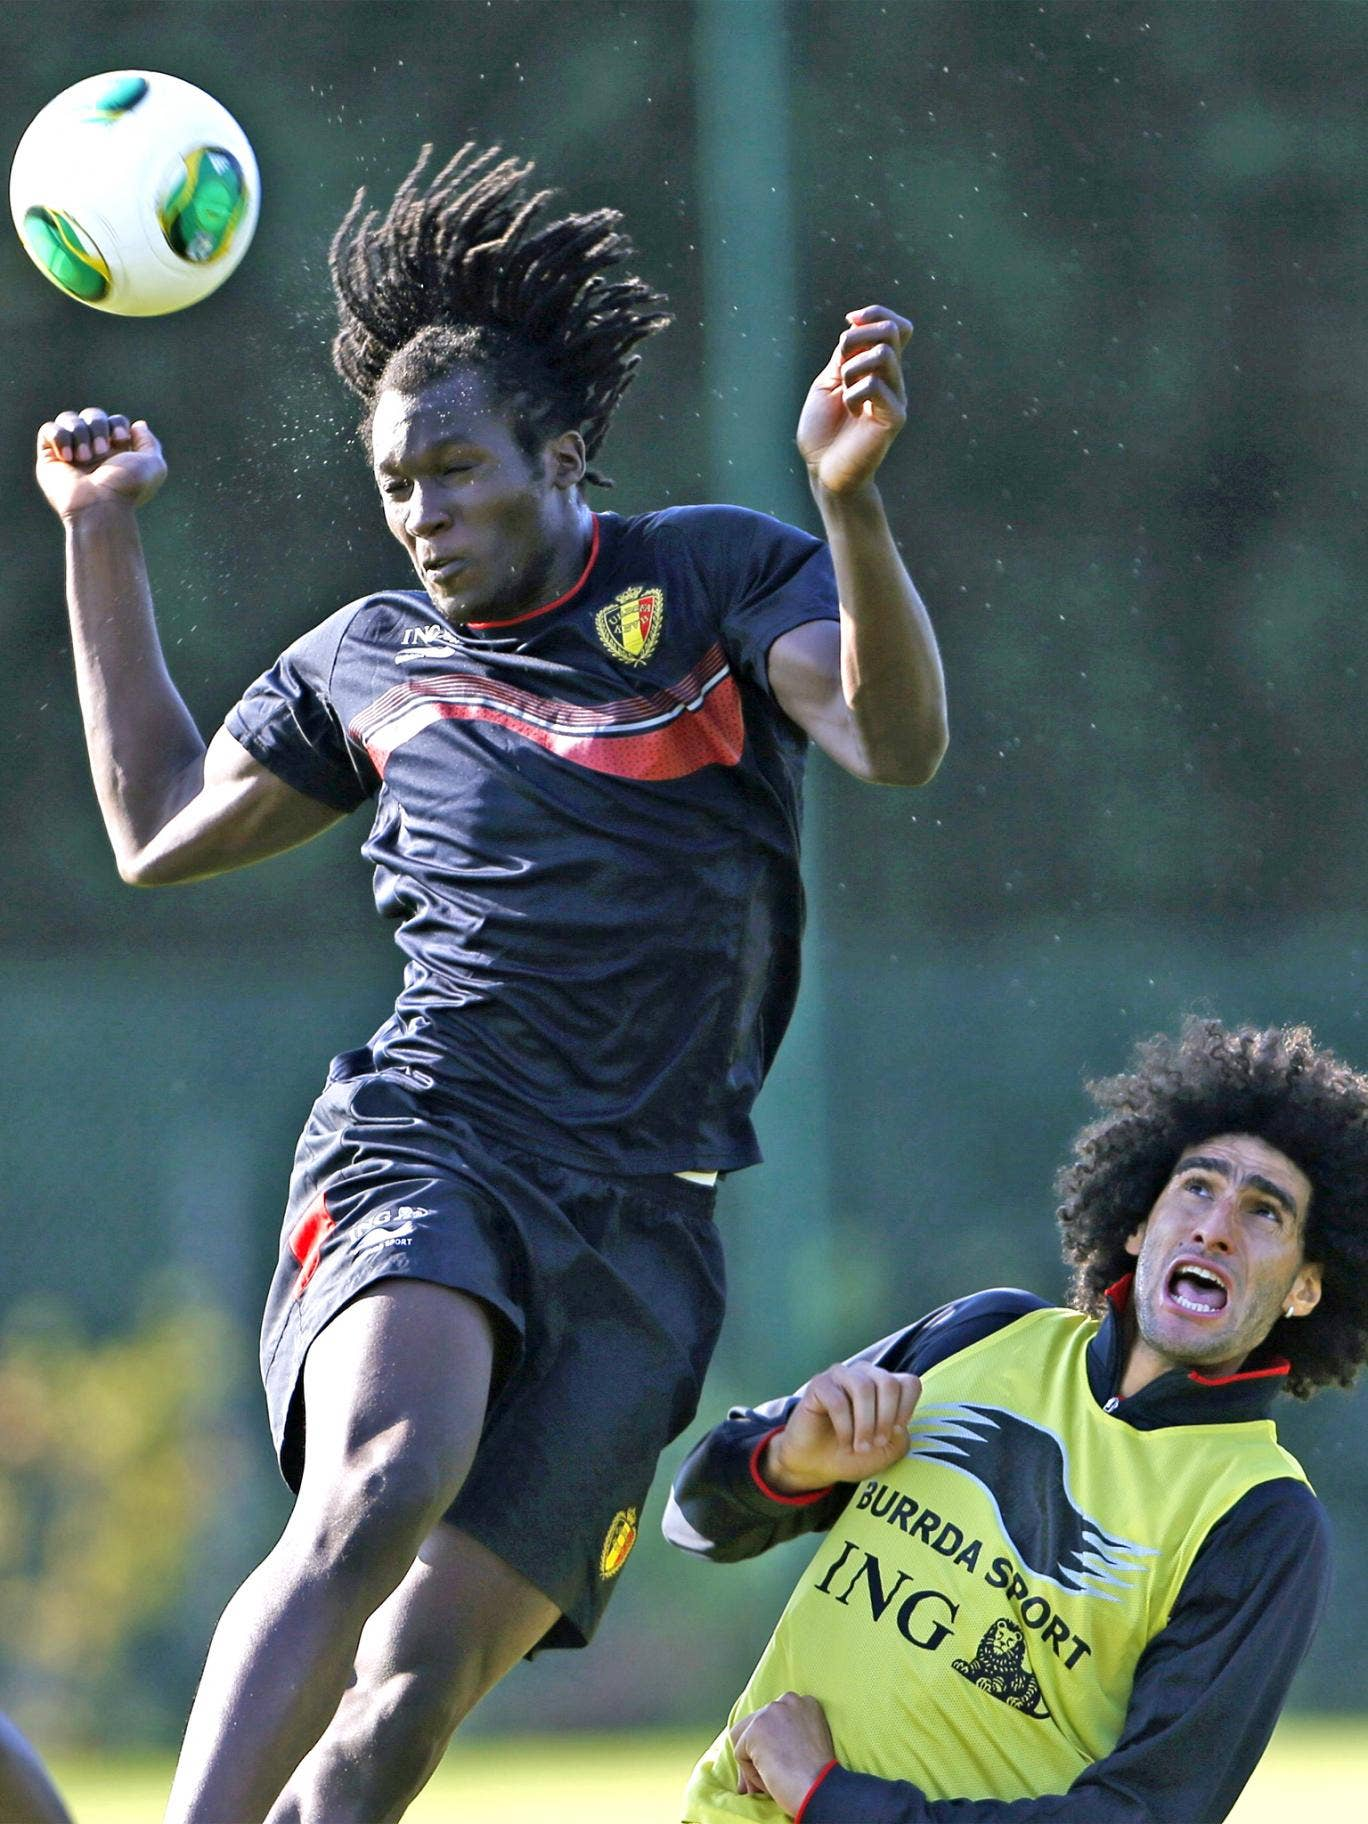 Romelu Lukaku (left) and Marouane Fellaini take part in a training session in Brussels ahead of Belgium's game against Scotland